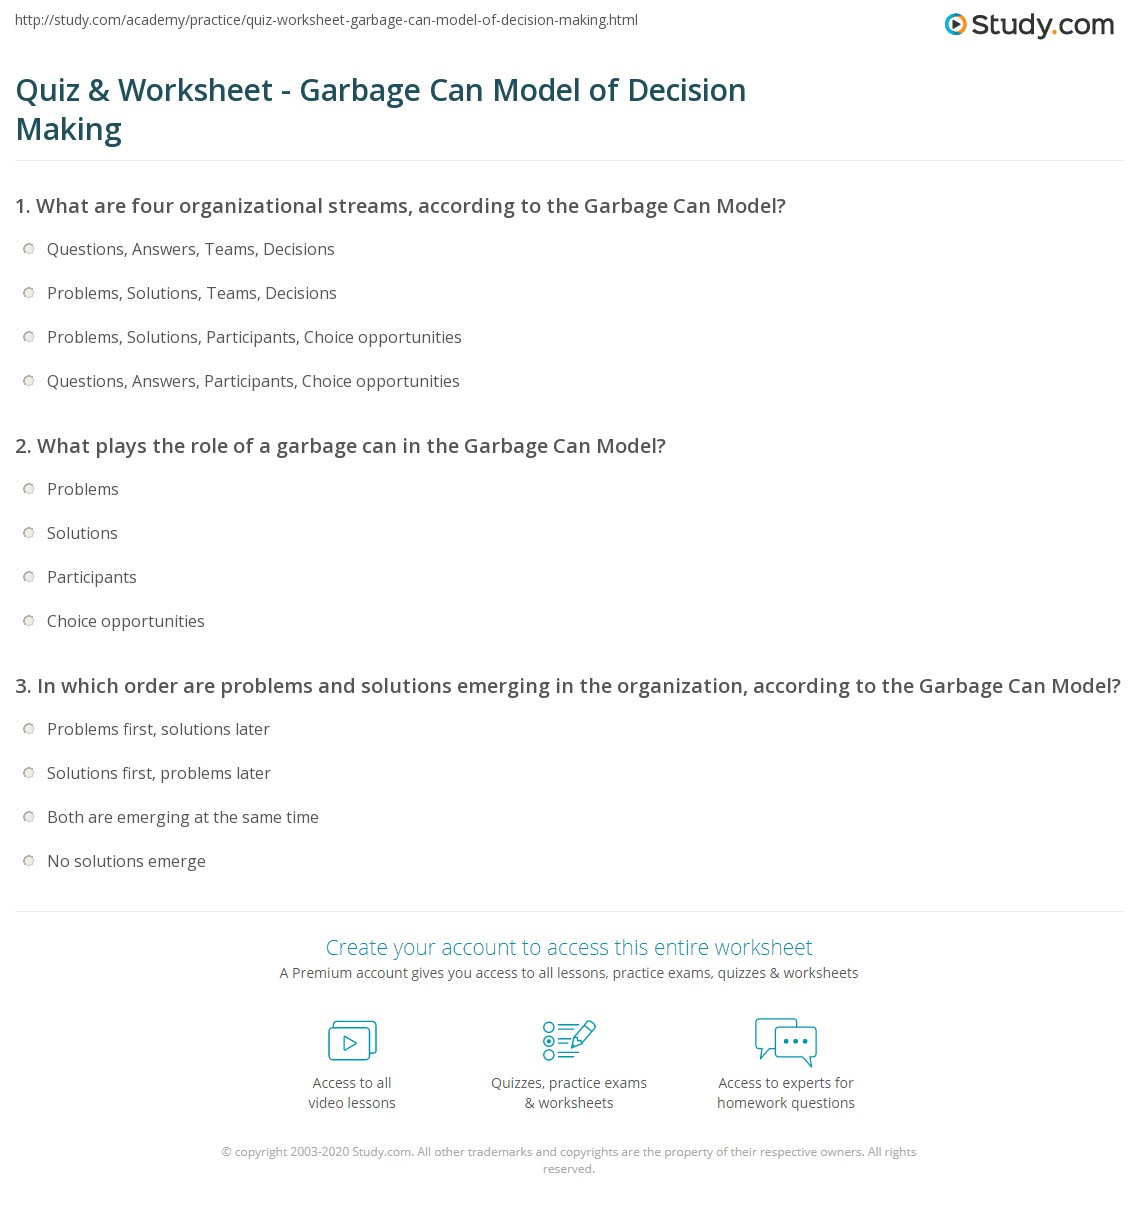 Quiz & Worksheet - Garbage Can Model of Decision Making | Study.com